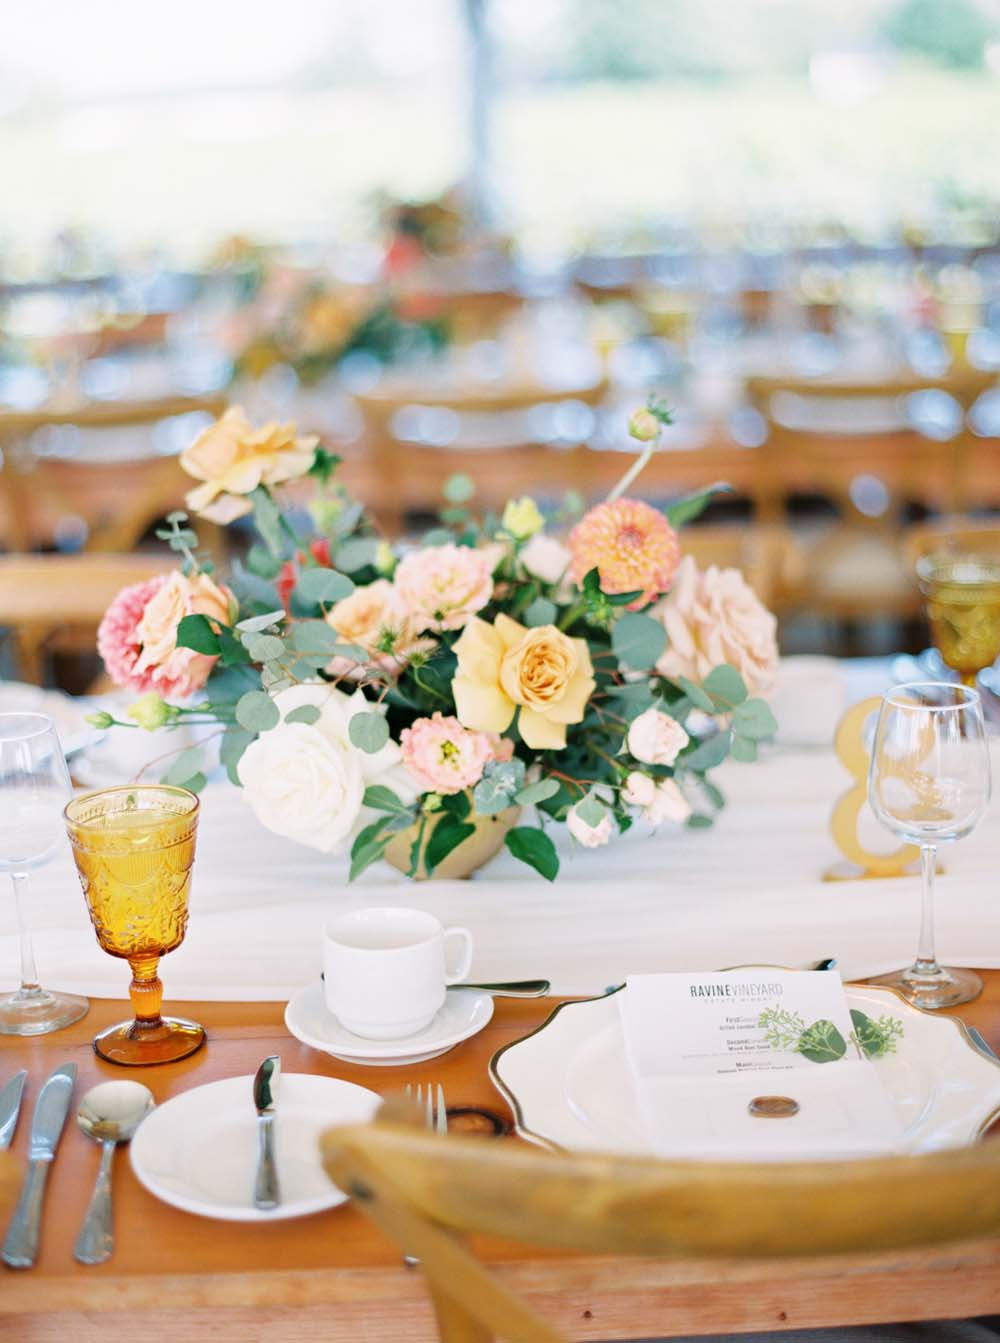 A Floral Peach Celebration in St. David's, Ontario - Table Setting